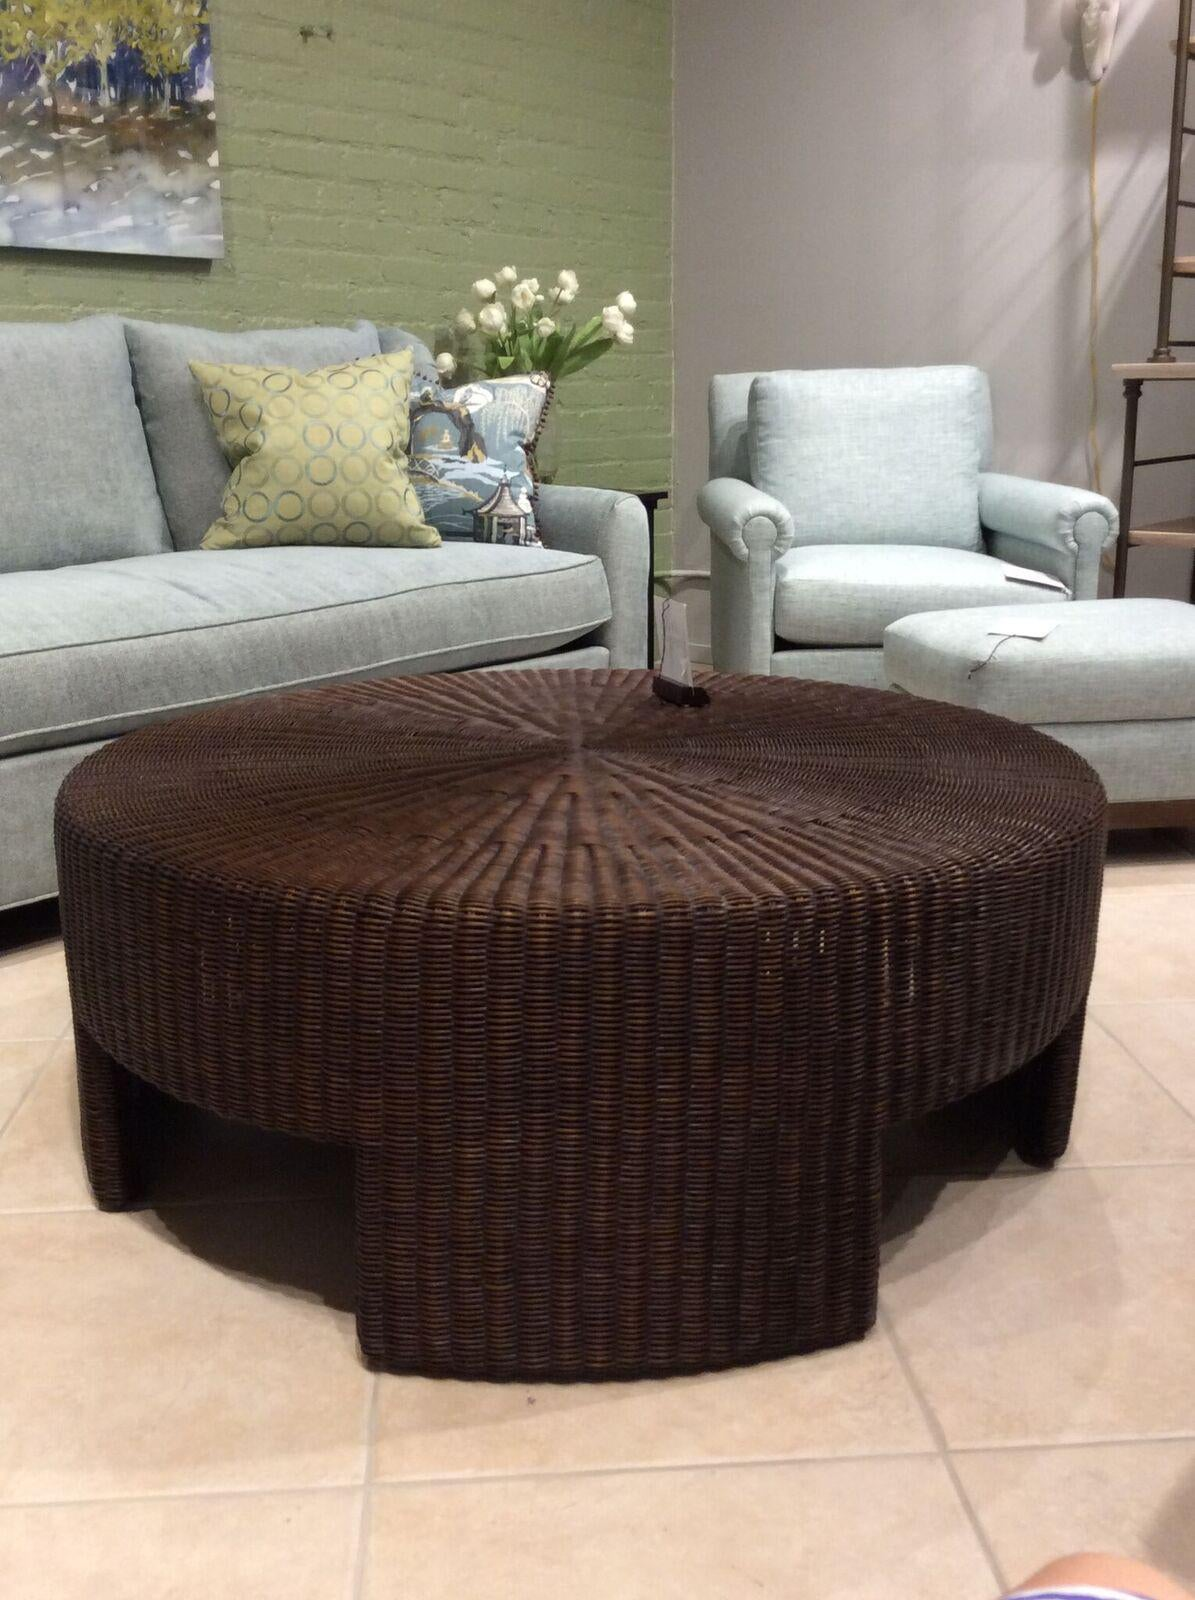 Wicker Round Coffee Table By Hickory Chair From Archive Collection. This  Wicker Table Is In